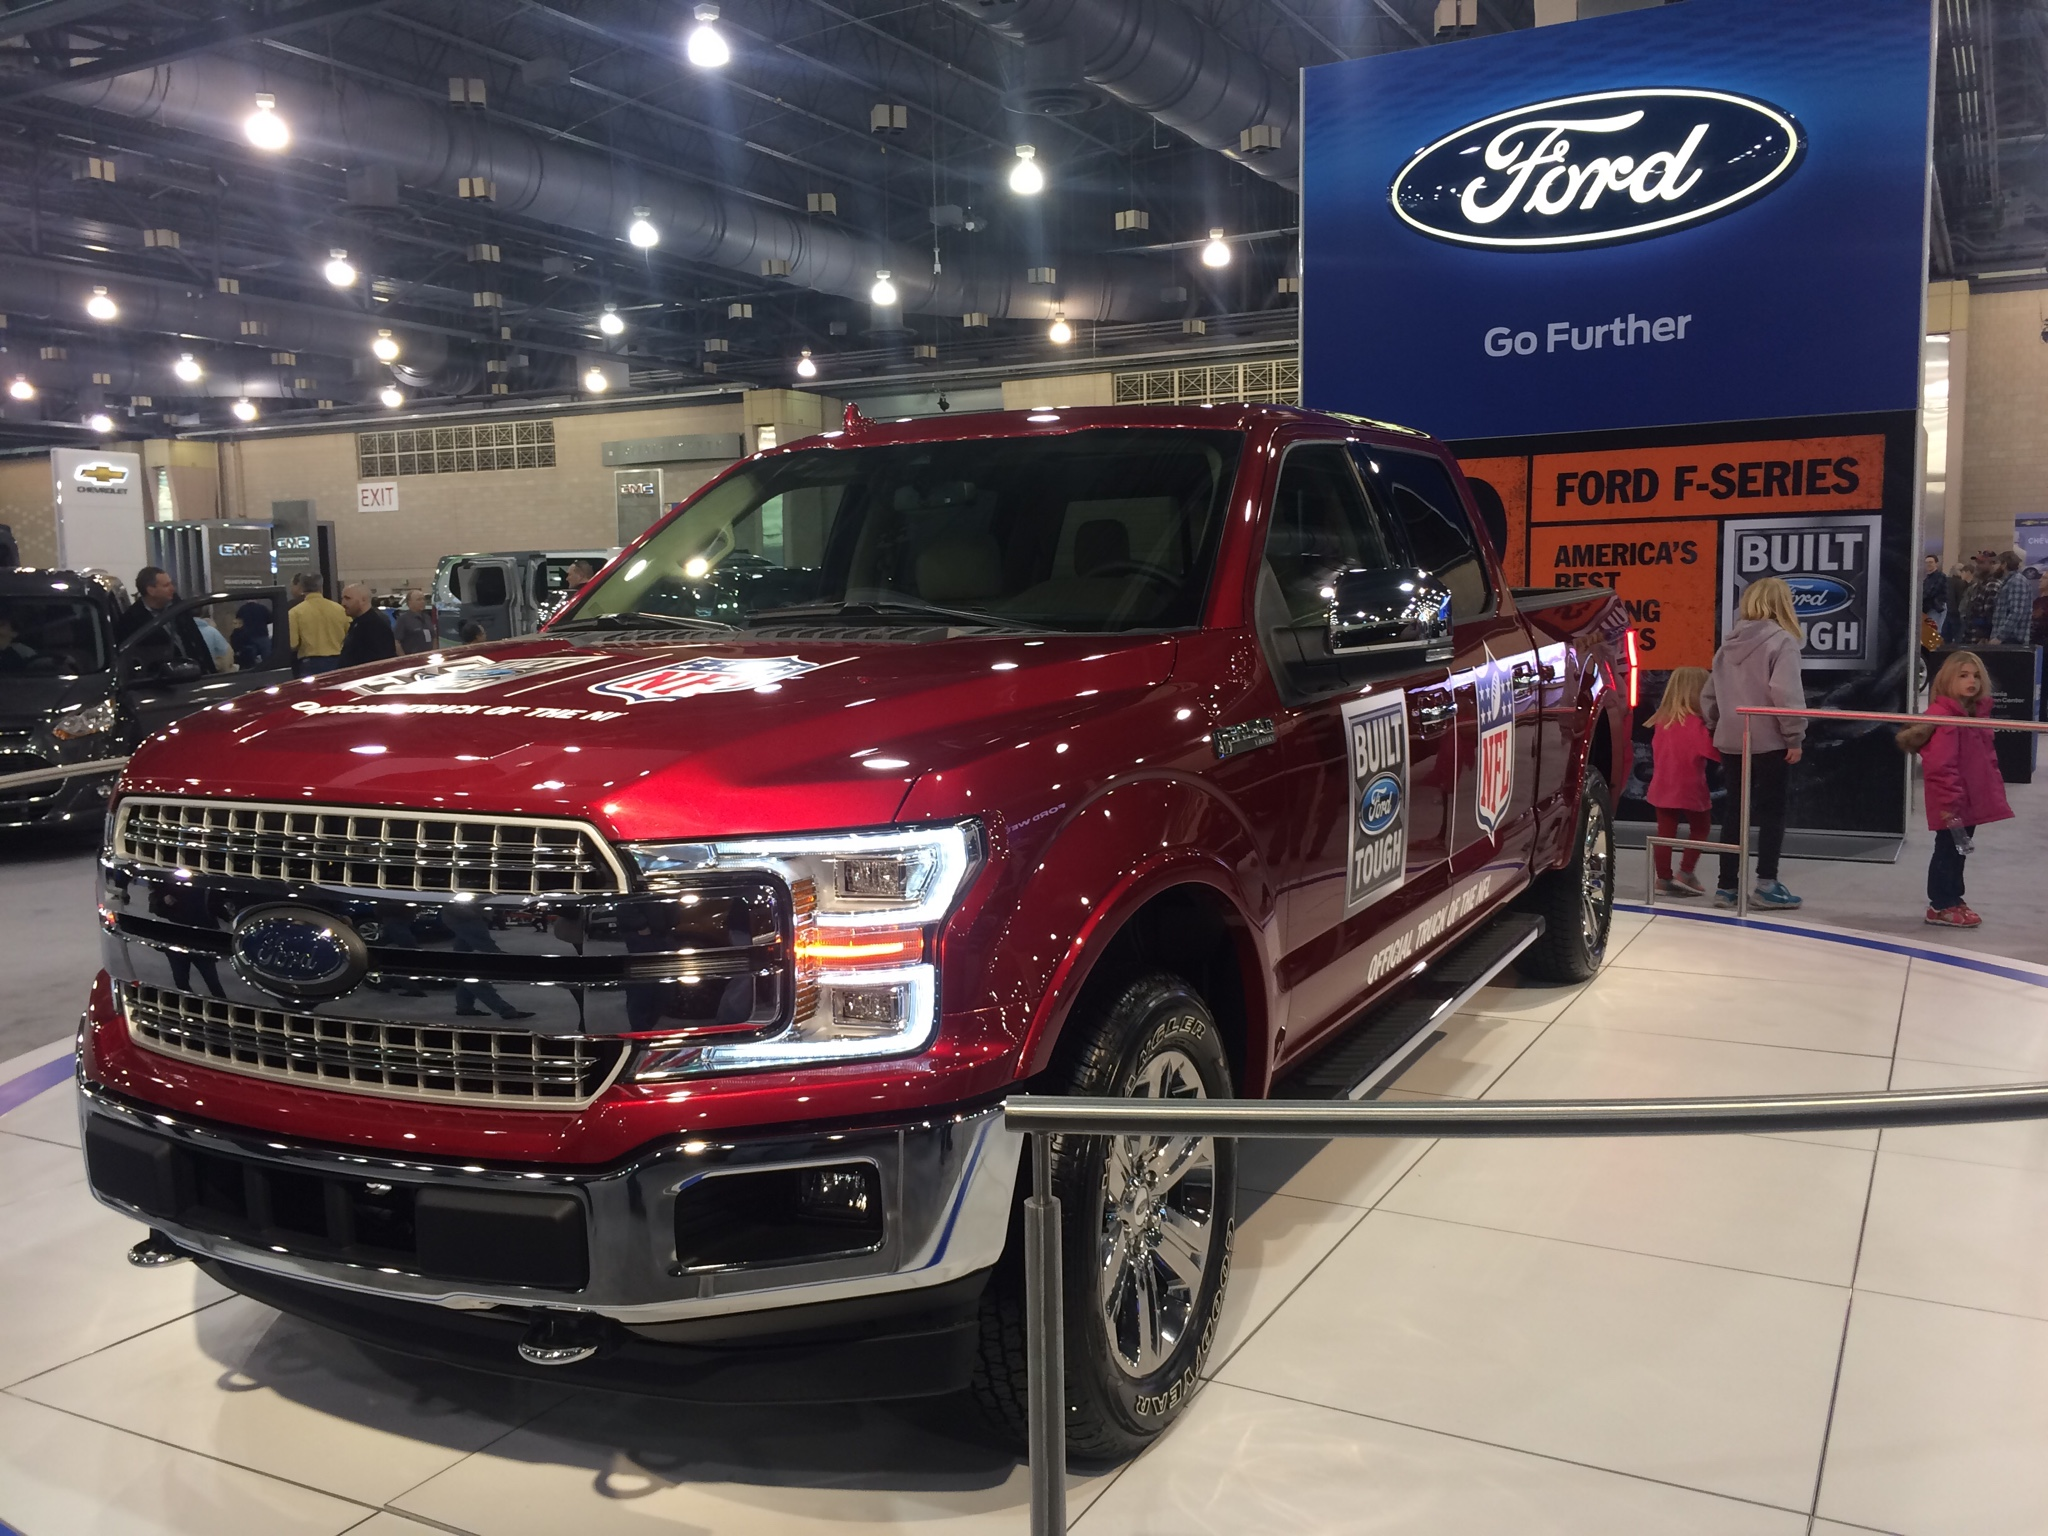 2018 F-150 - Diesel Engine, Refreshed Look - Ford F150 Forum